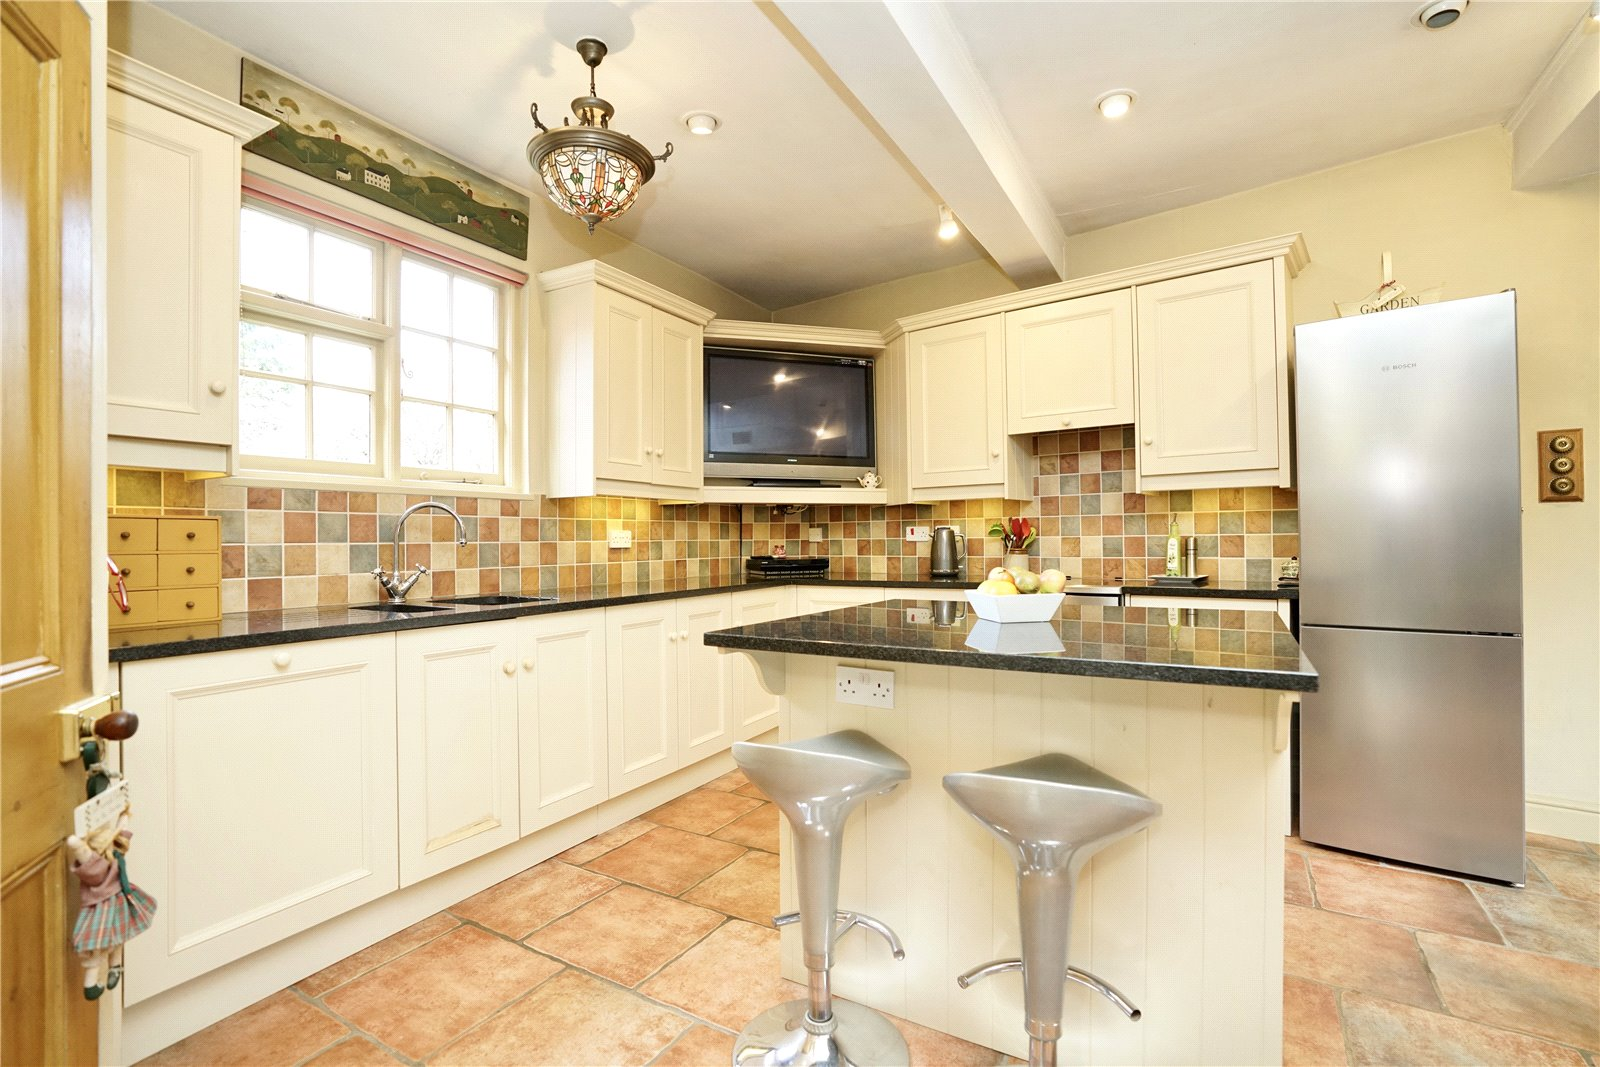 4 bed house for sale in Great Staughton 5